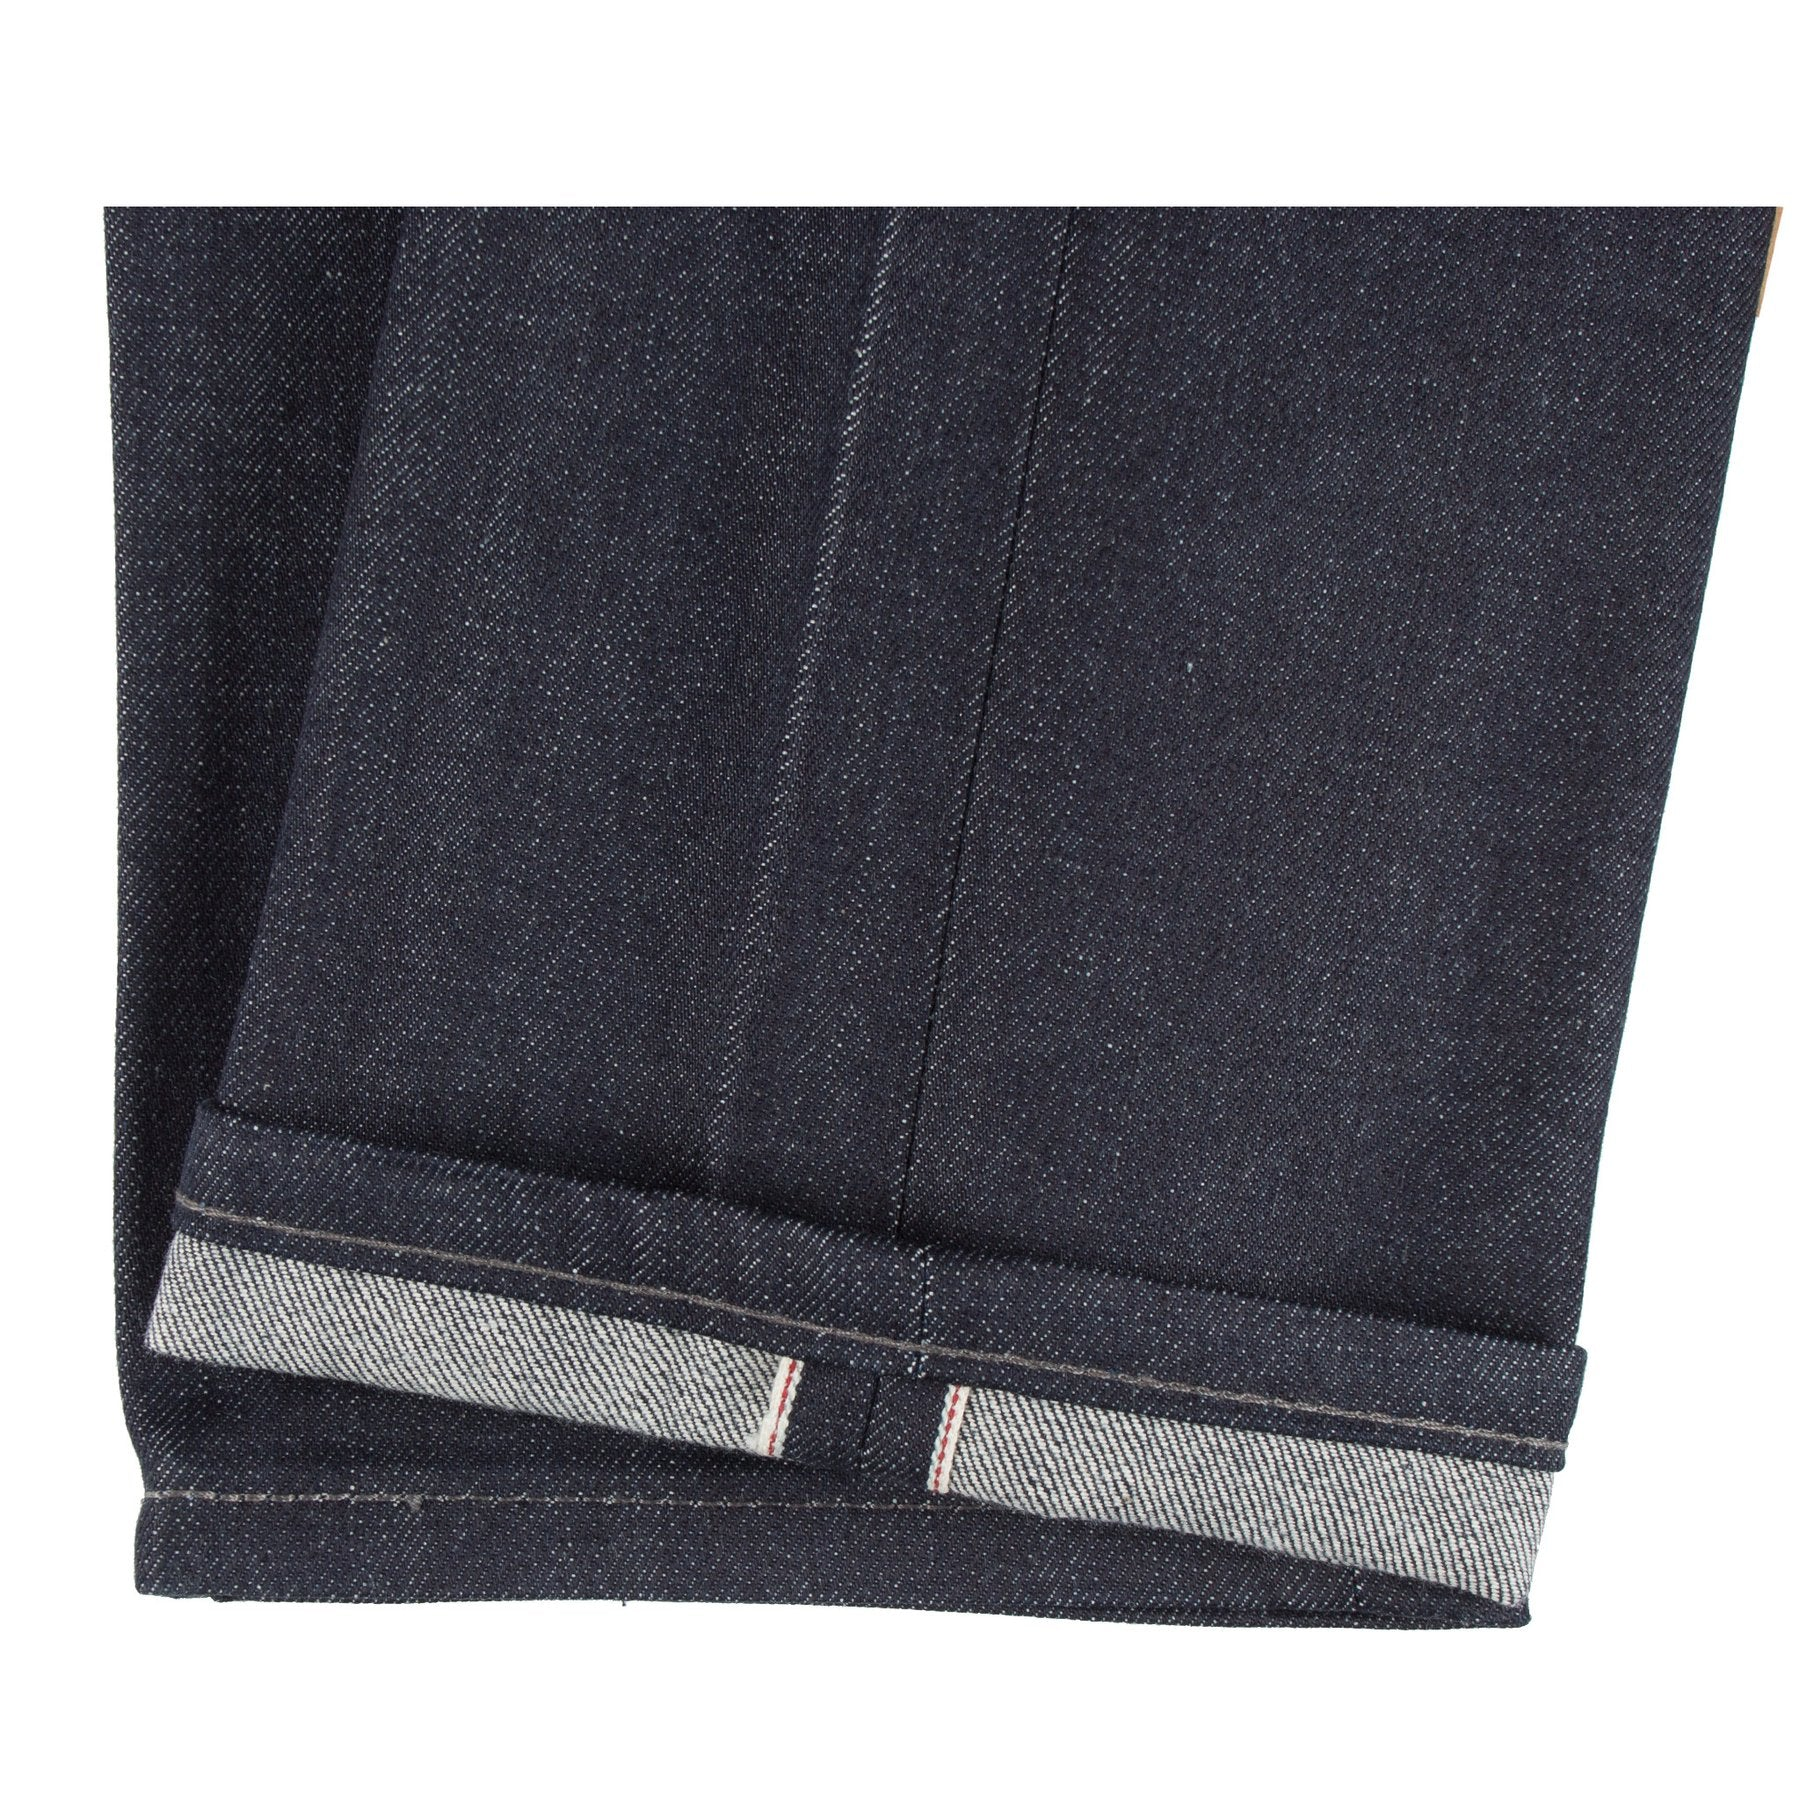 N&F - Indigo Selvedge - The Populess Company